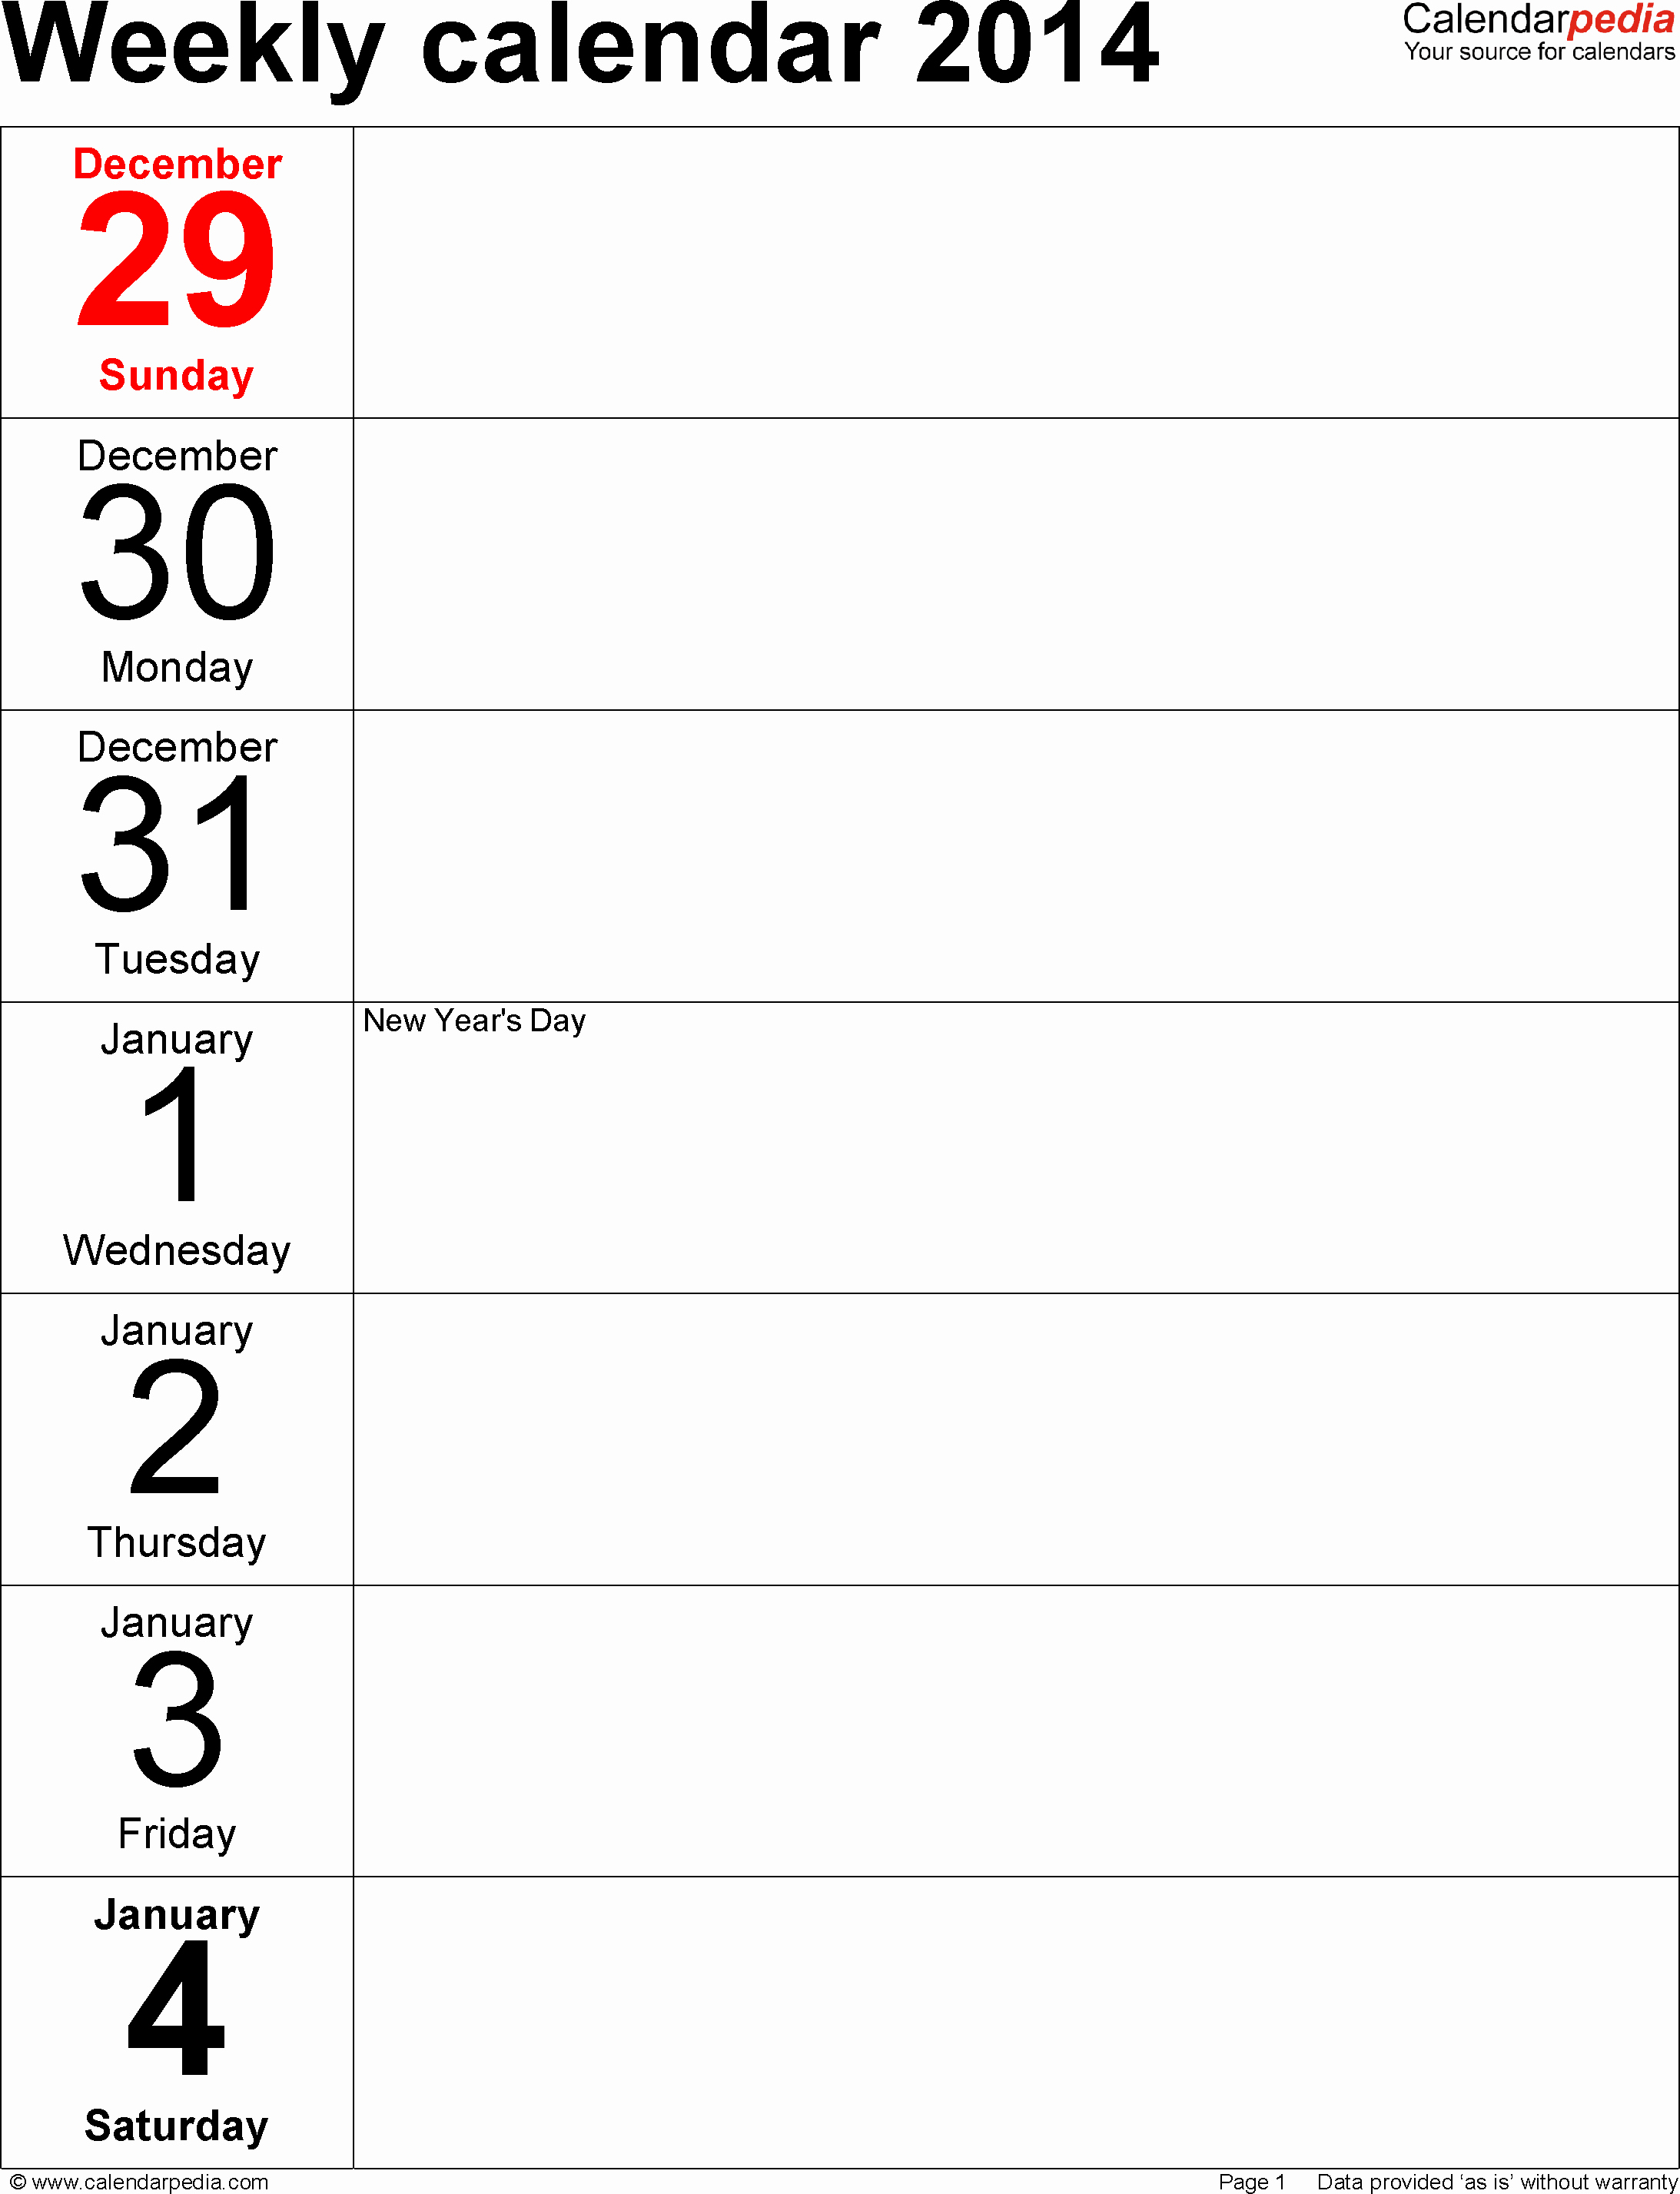 Microsoft Word Weekly Calendar Template Inspirational Weekly Calendar 2014 for Word 4 Free Printable Templates